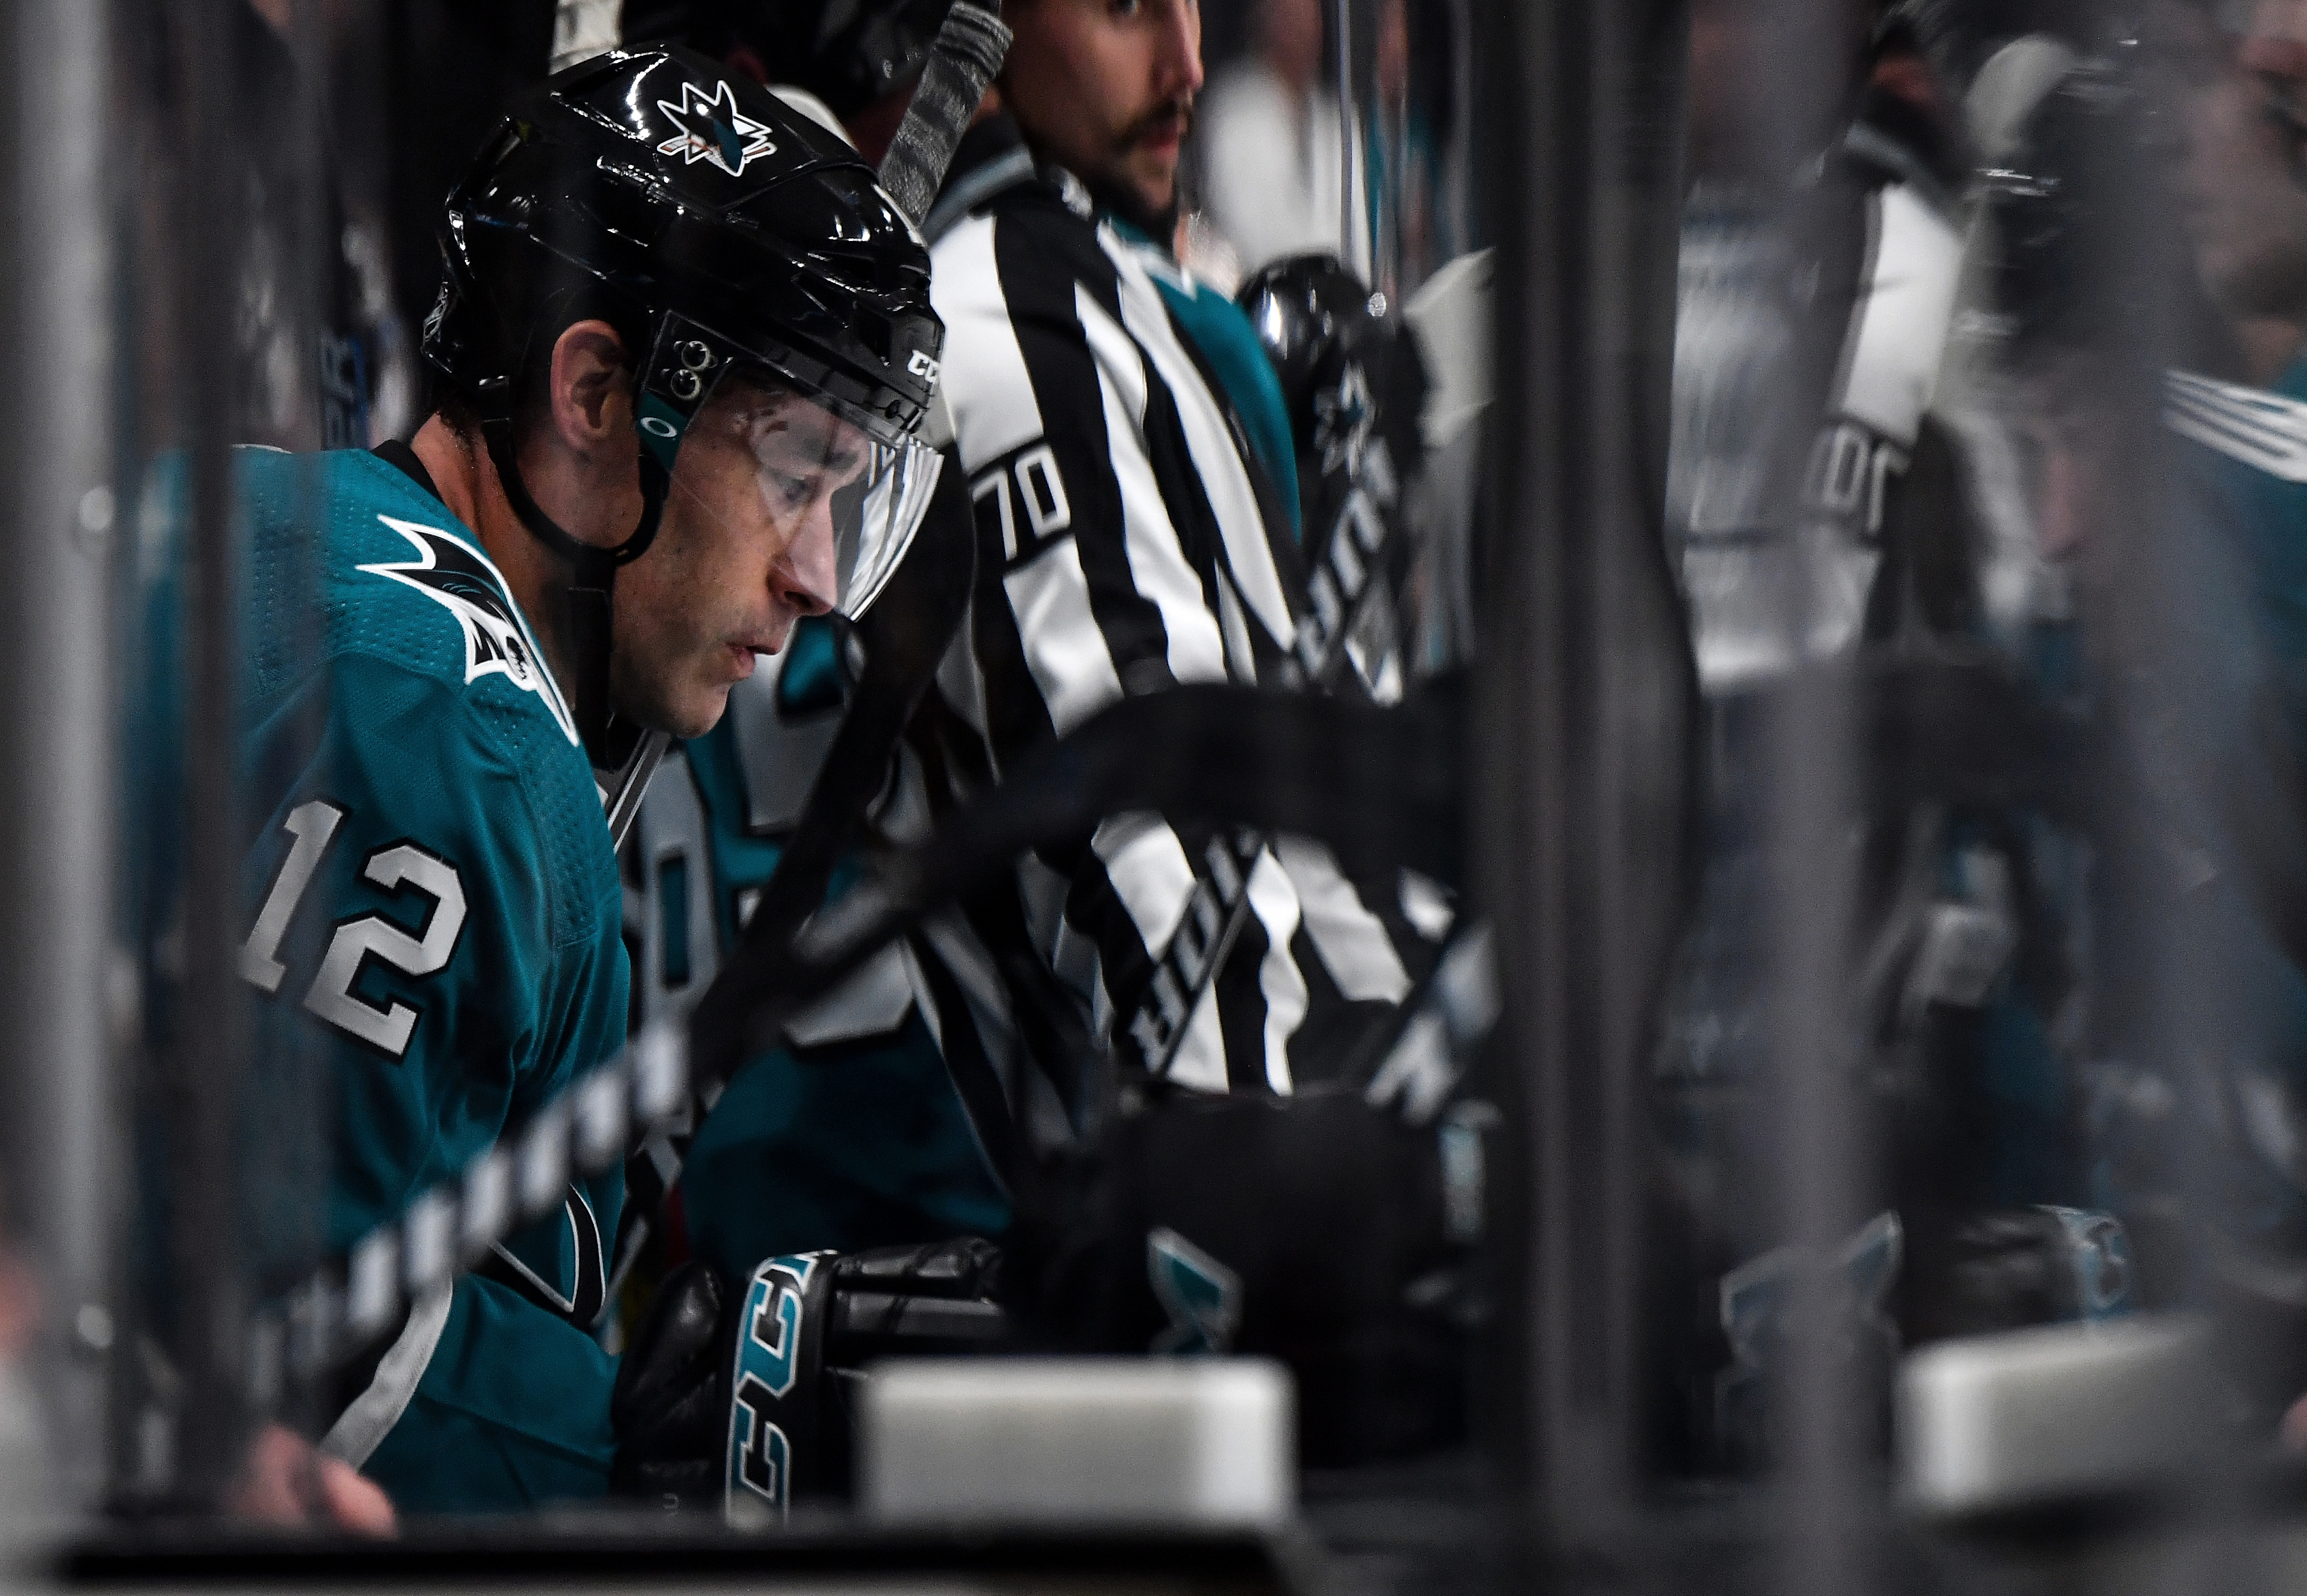 SAN JOSE, CA - OCTOBER 13: Patrick Marleau #12 of the San Jose Sharks sitting on the bench against the Calgary Flames at SAP Center on October 13, 2019 in San Jose, California.